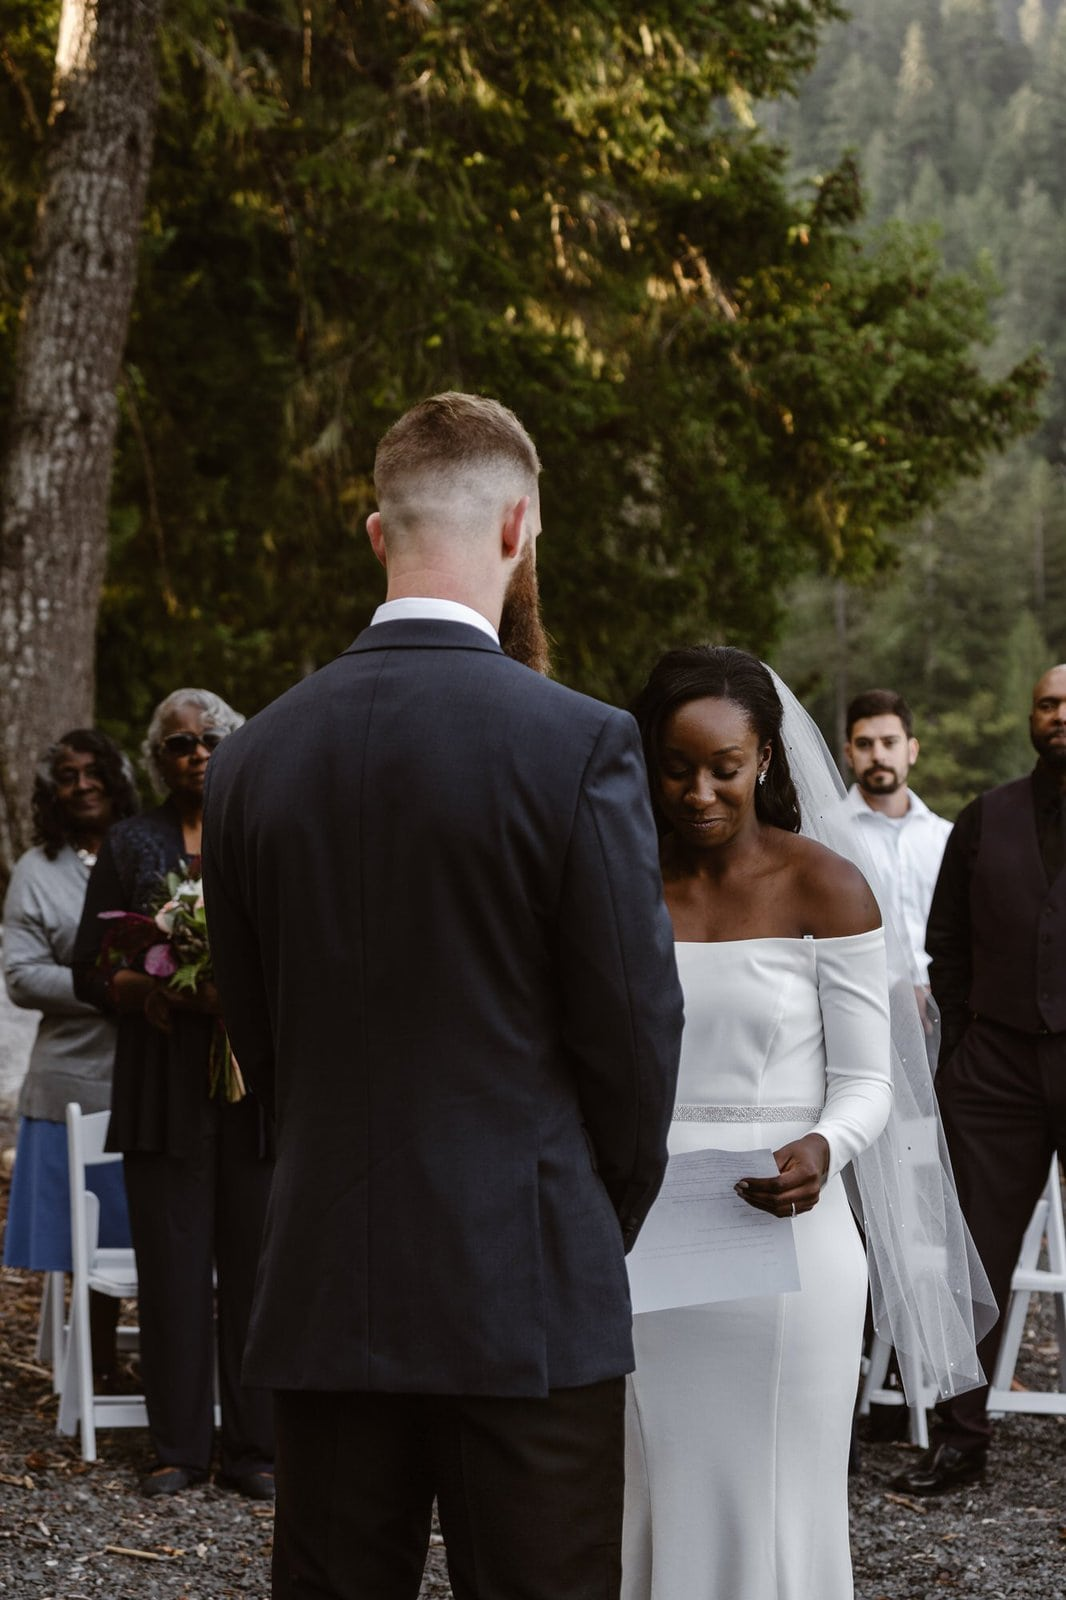 Exchanging vows with the groom.